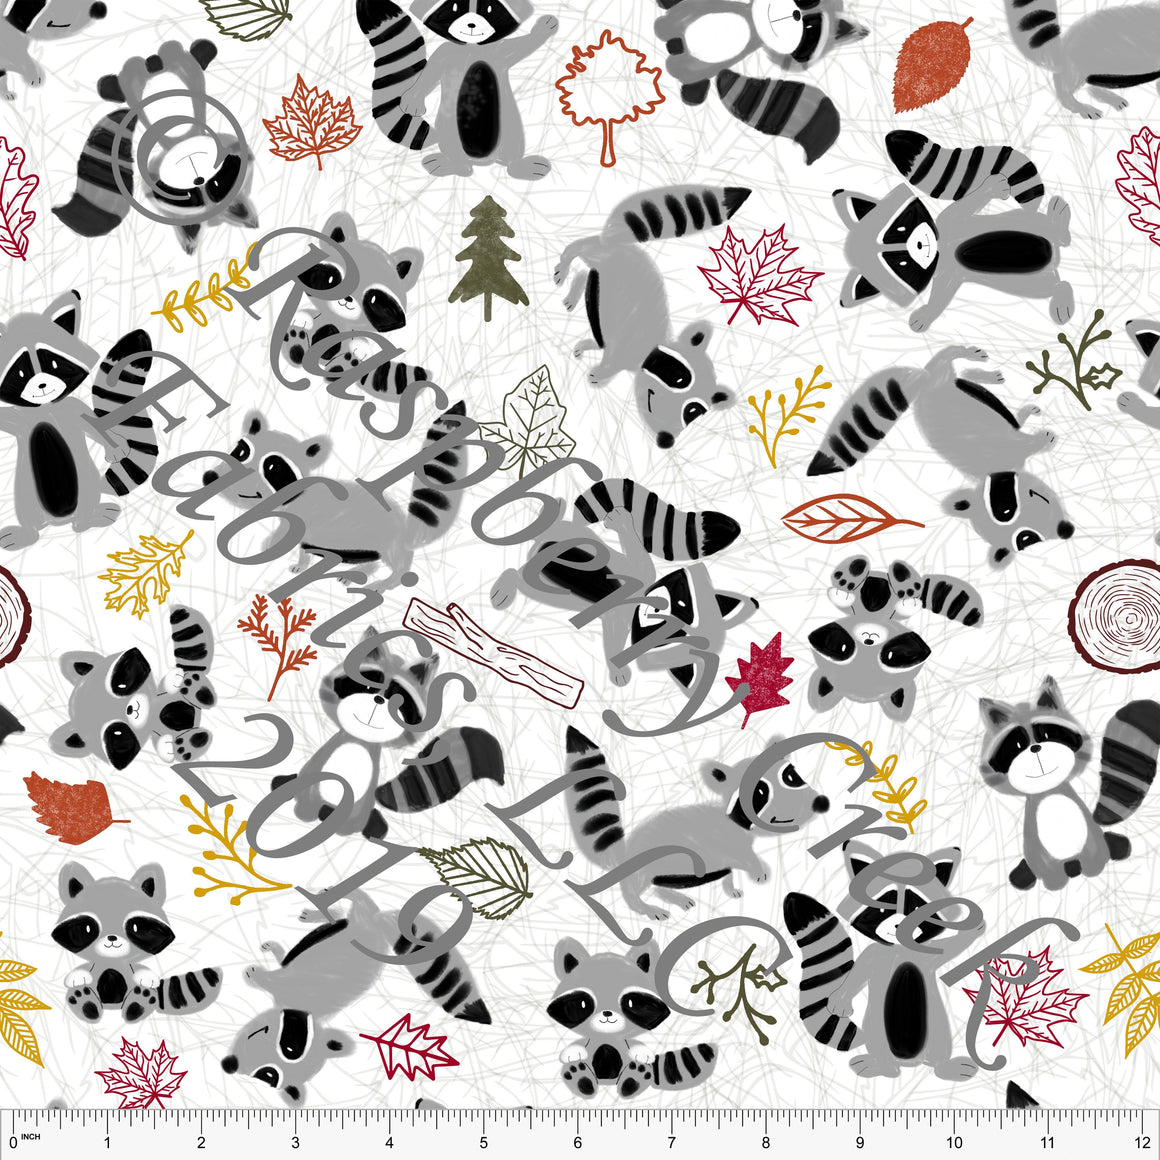 Grey Black Rust Mustard and Olive Leaves and Raccoons By Courtney Graziano For Club Fabrics - Raspberry Creek Fabrics